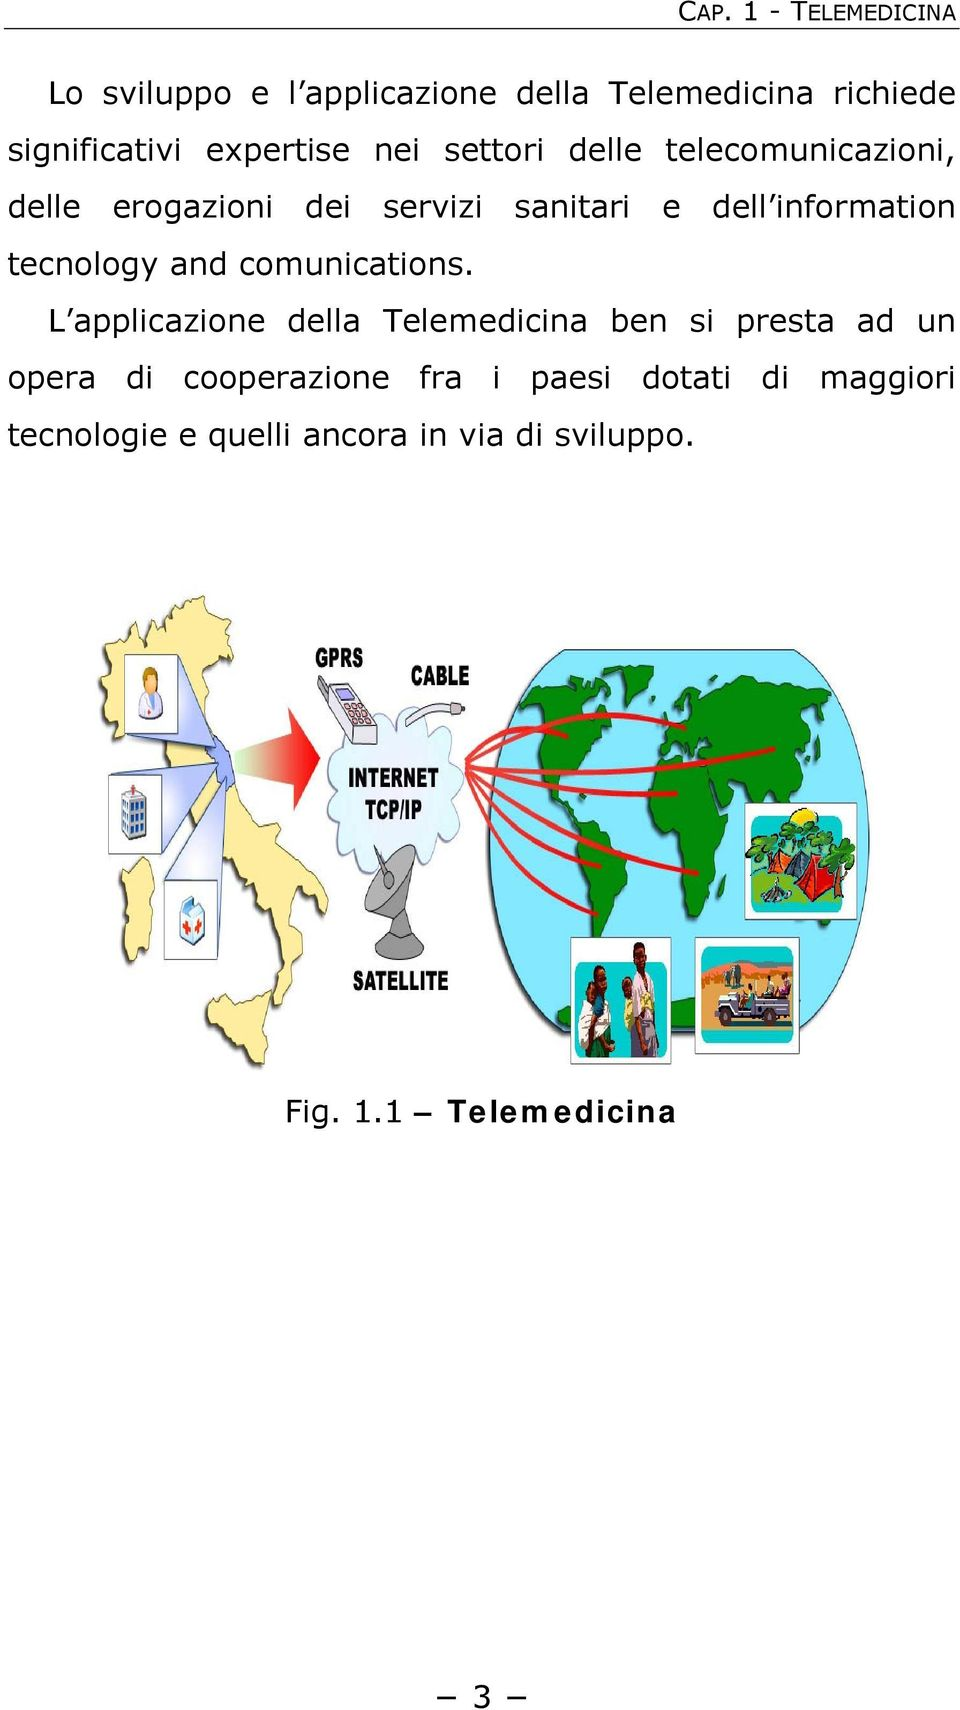 information tecnology and comunications.